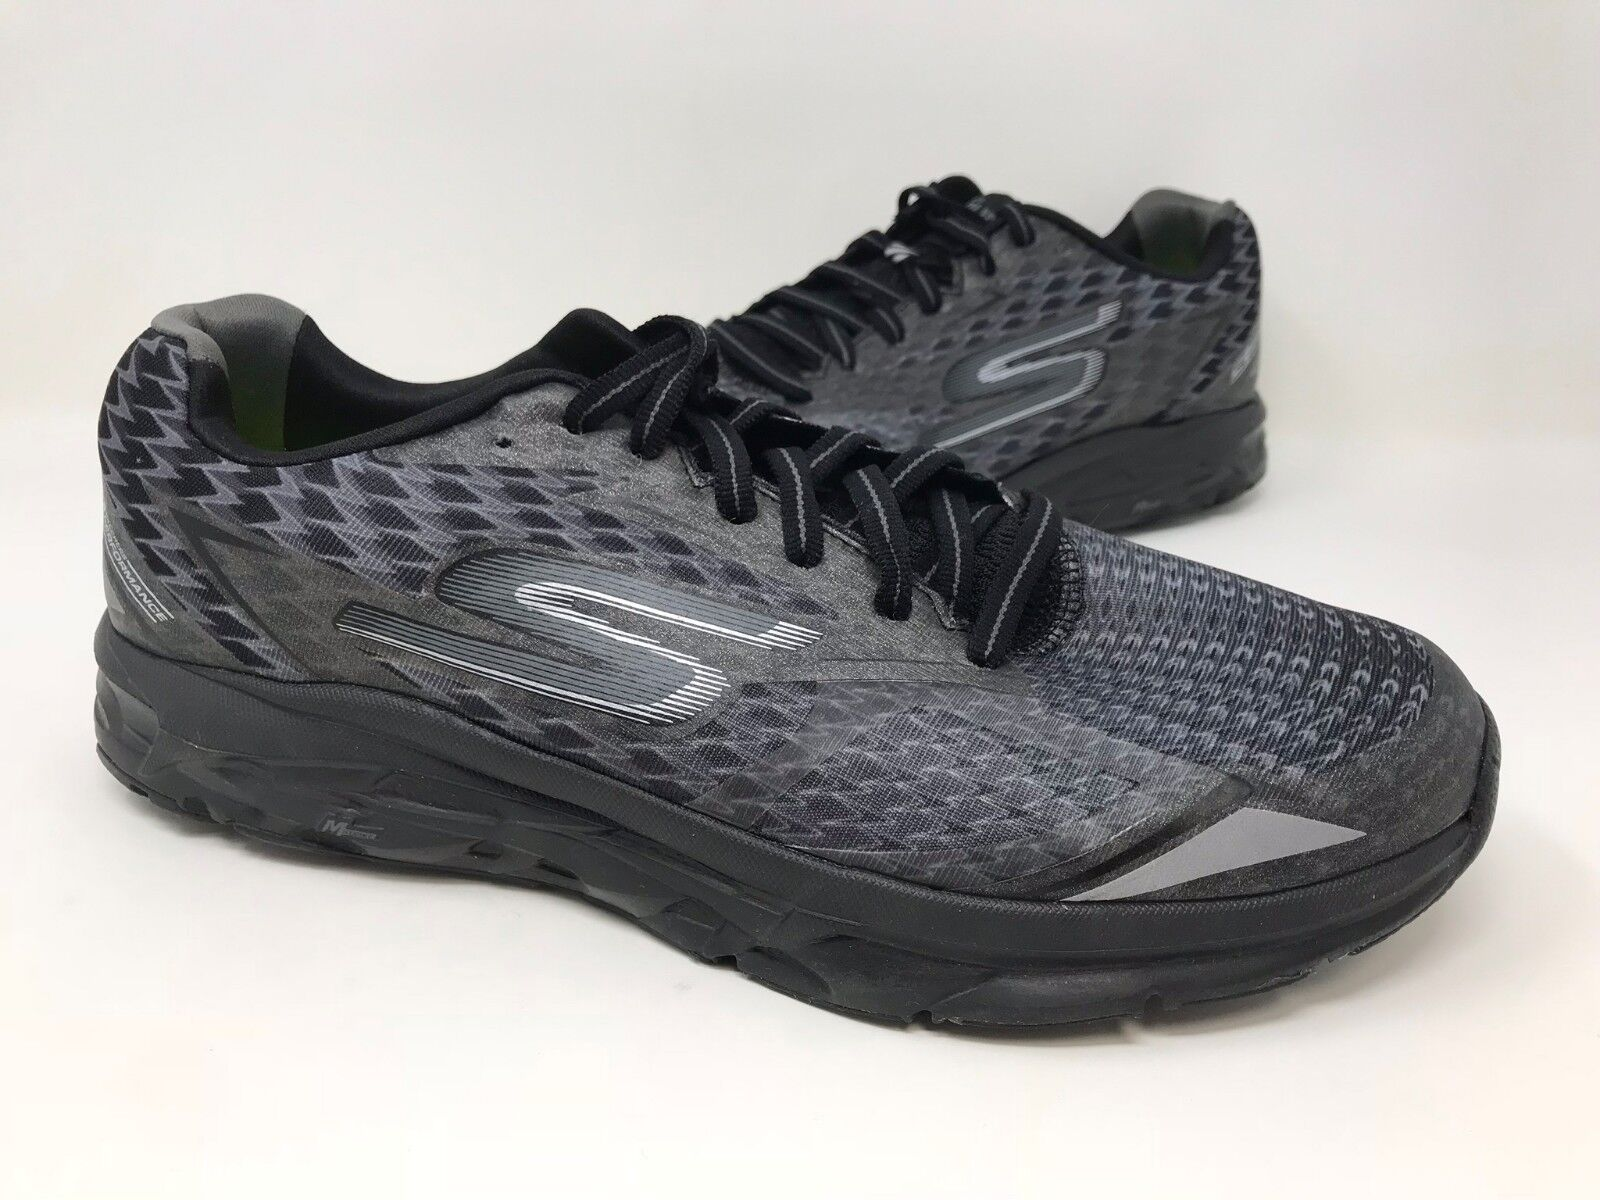 New! Men's Skechers 54106 GoRun Forza 2 Running Shoes Black C16 The latest discount shoes for men and women